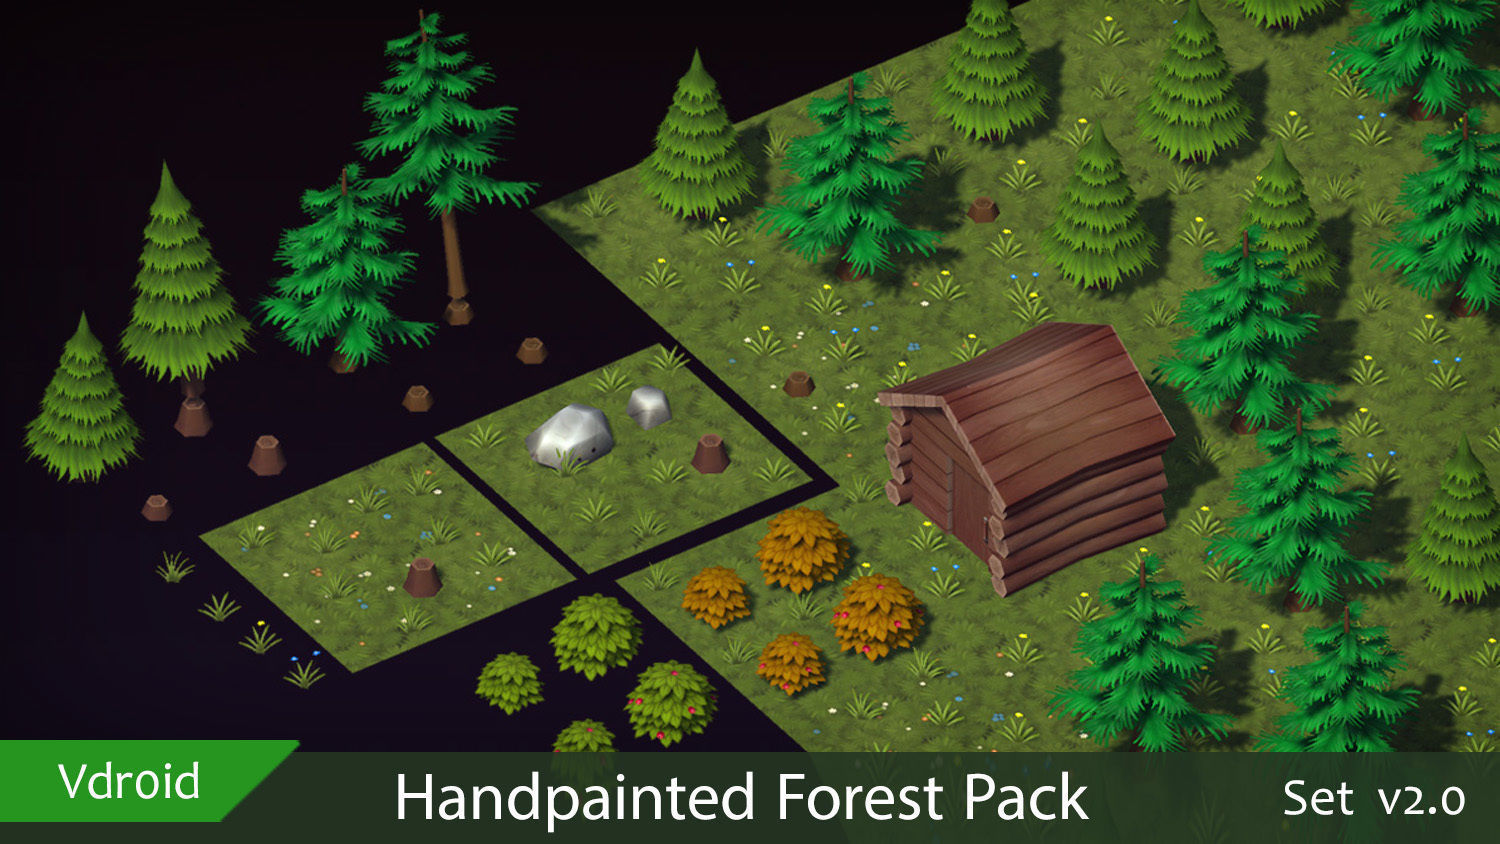 Handpainted Forest Pack v2